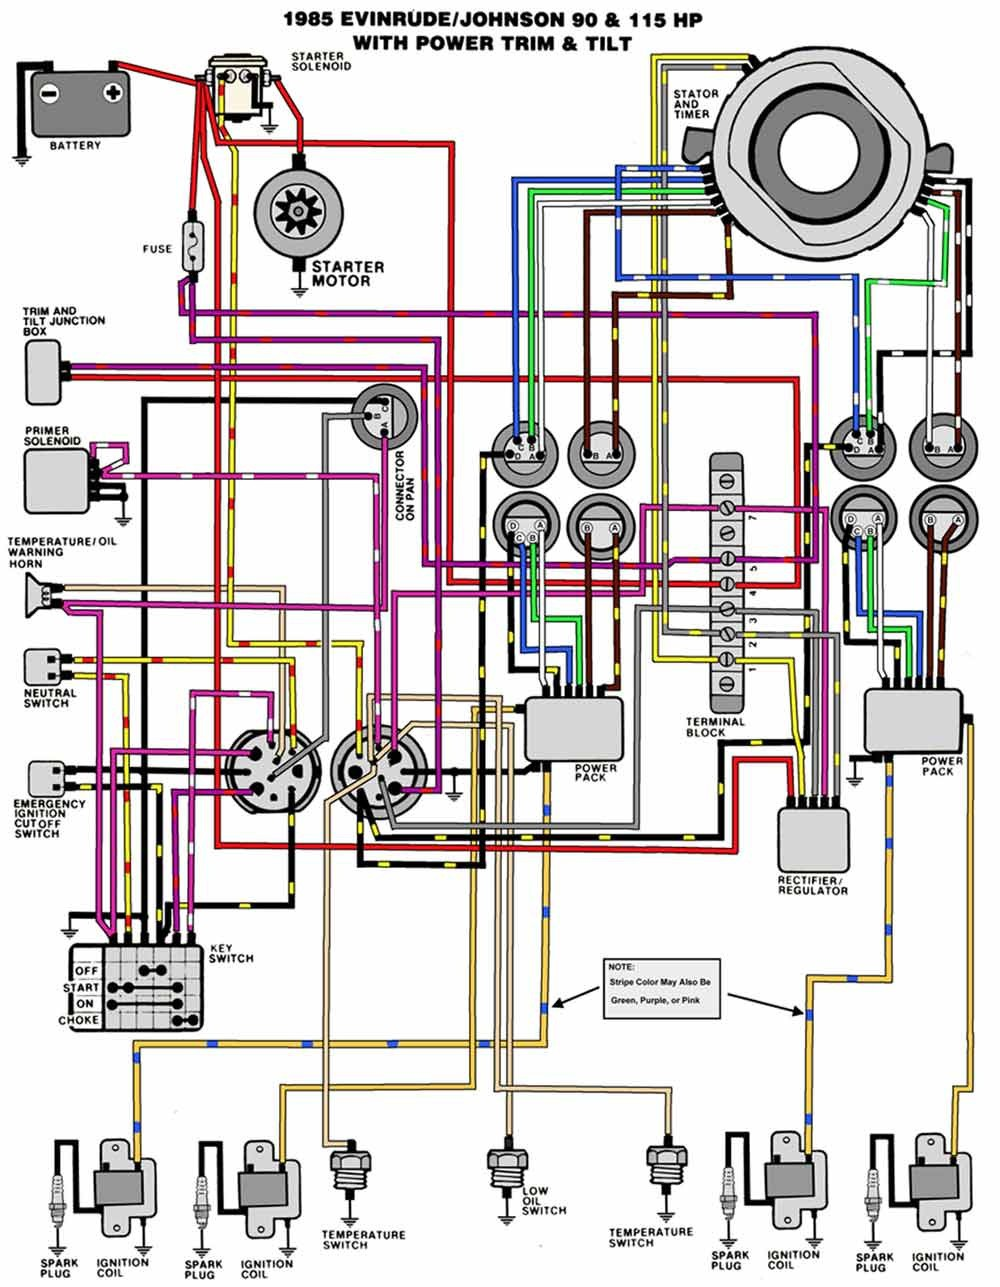 medium resolution of mercury outboard wiring diagram schematic inspirational car 86 mercury 35 hp wiring diagram mastertech marine evinrude